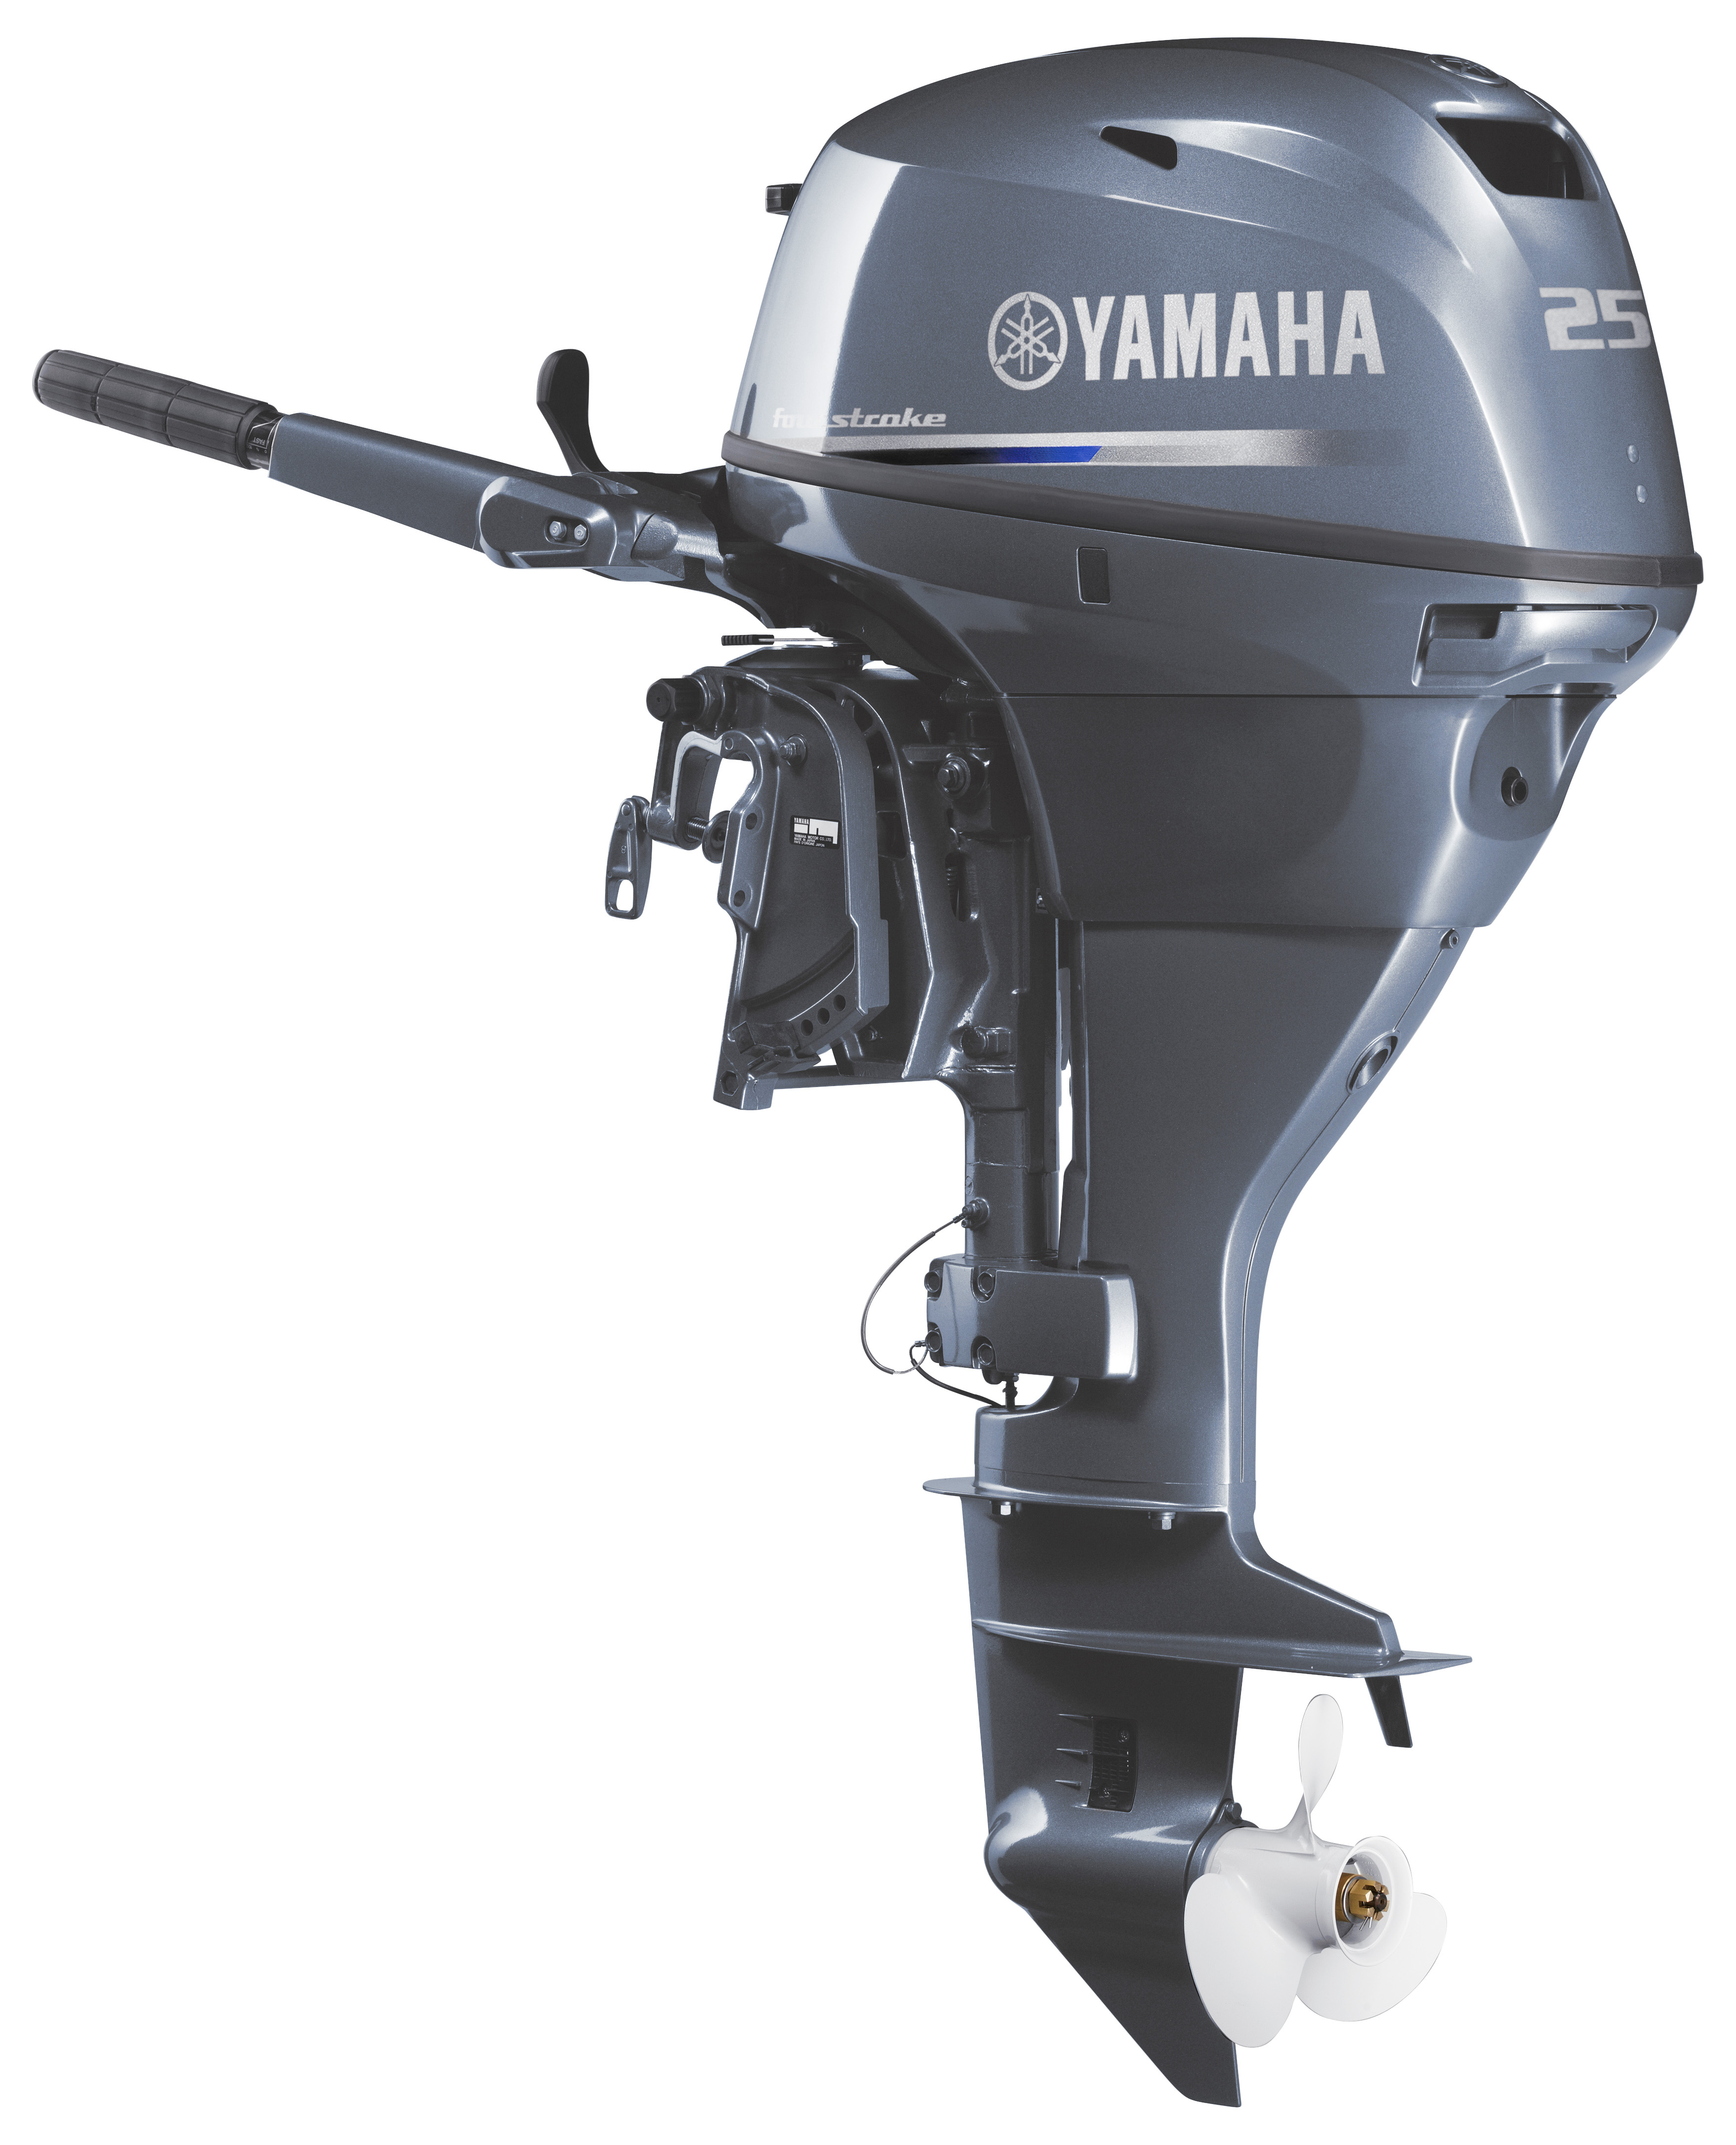 Hp Yamaha For Sale Brisbane